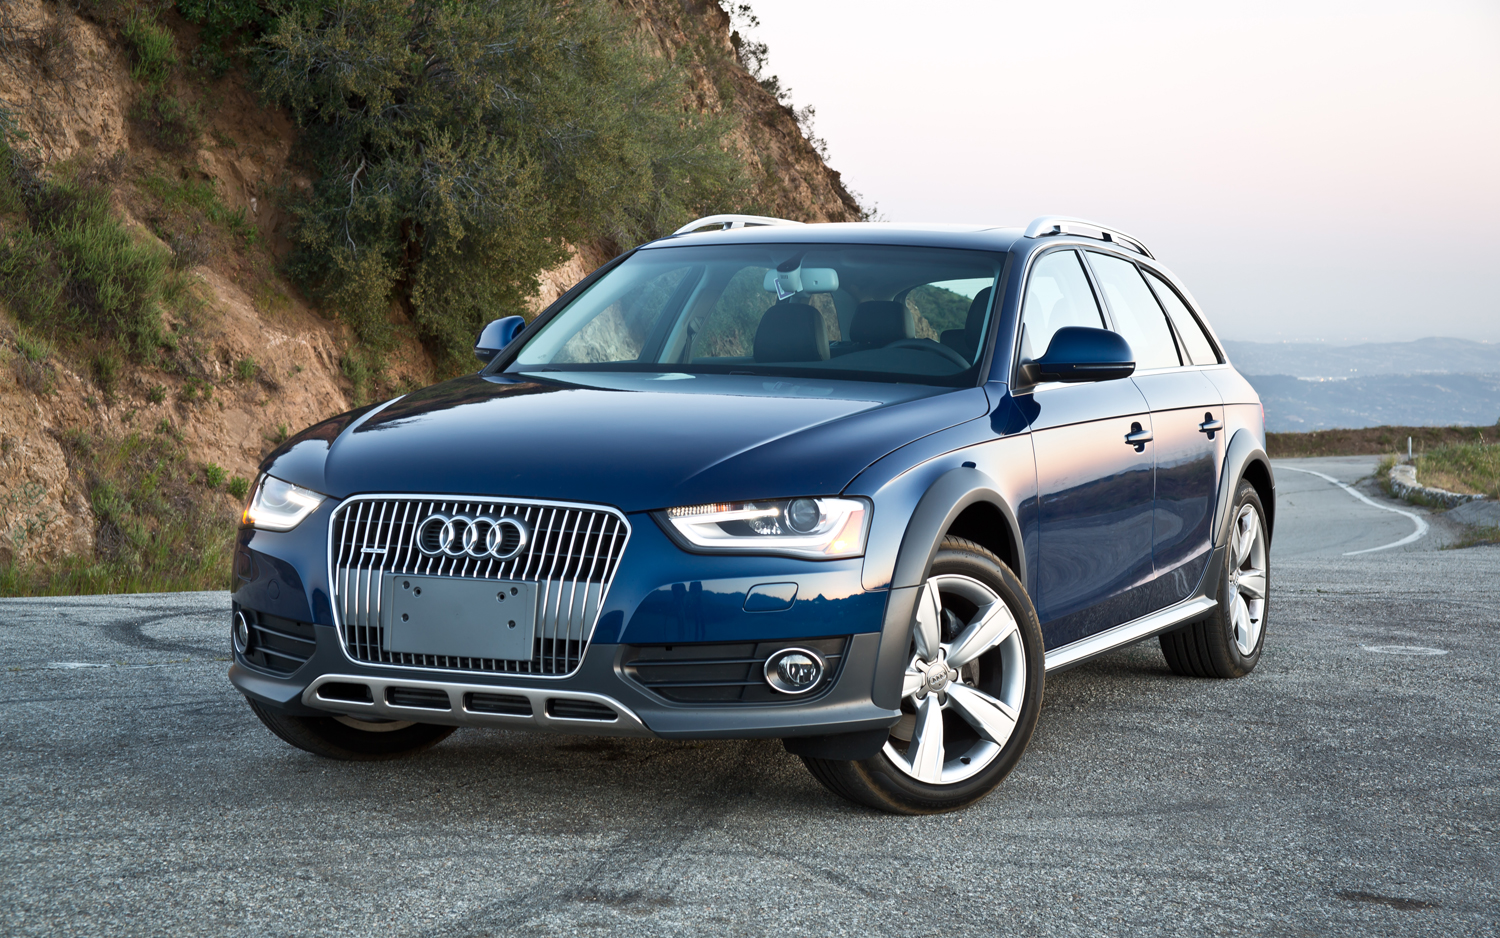 audi allroad images #5